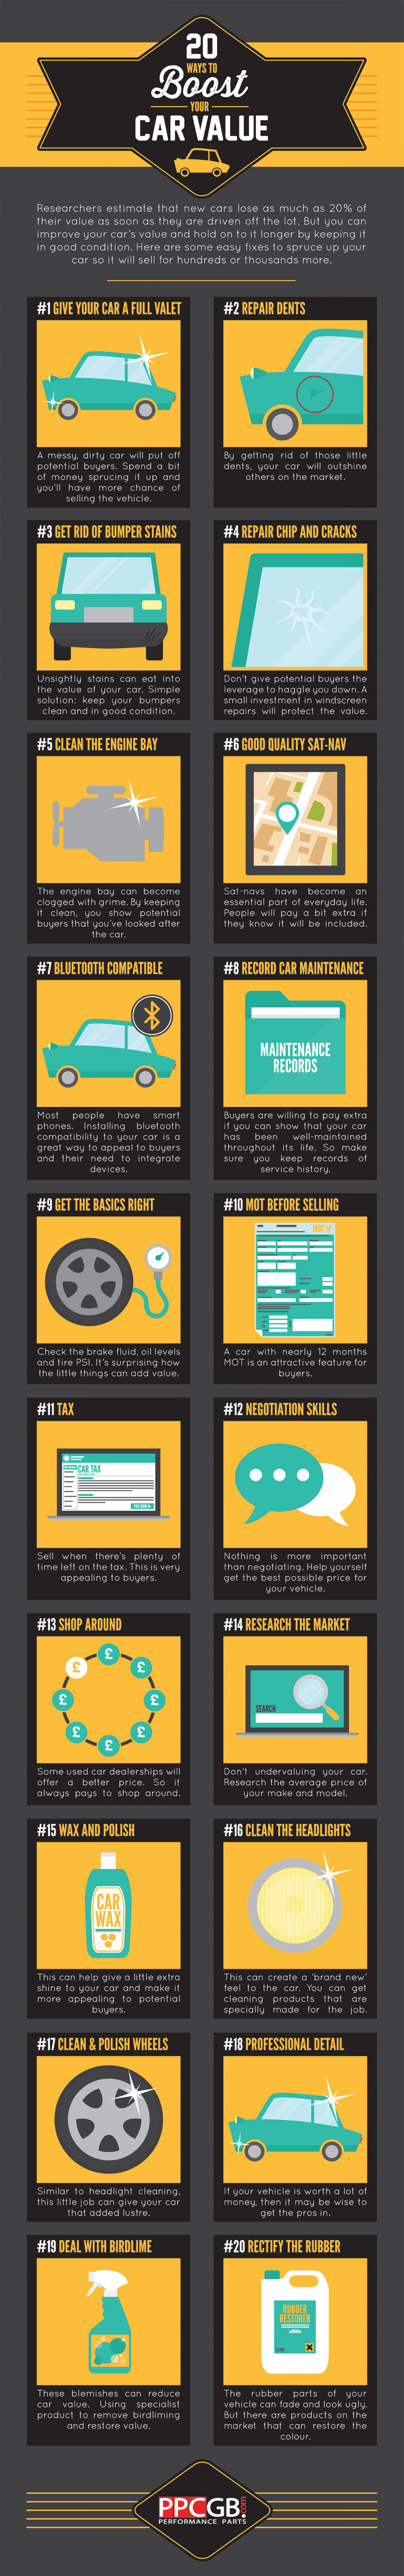 20 Ways to Boost Your Car Value Infographic